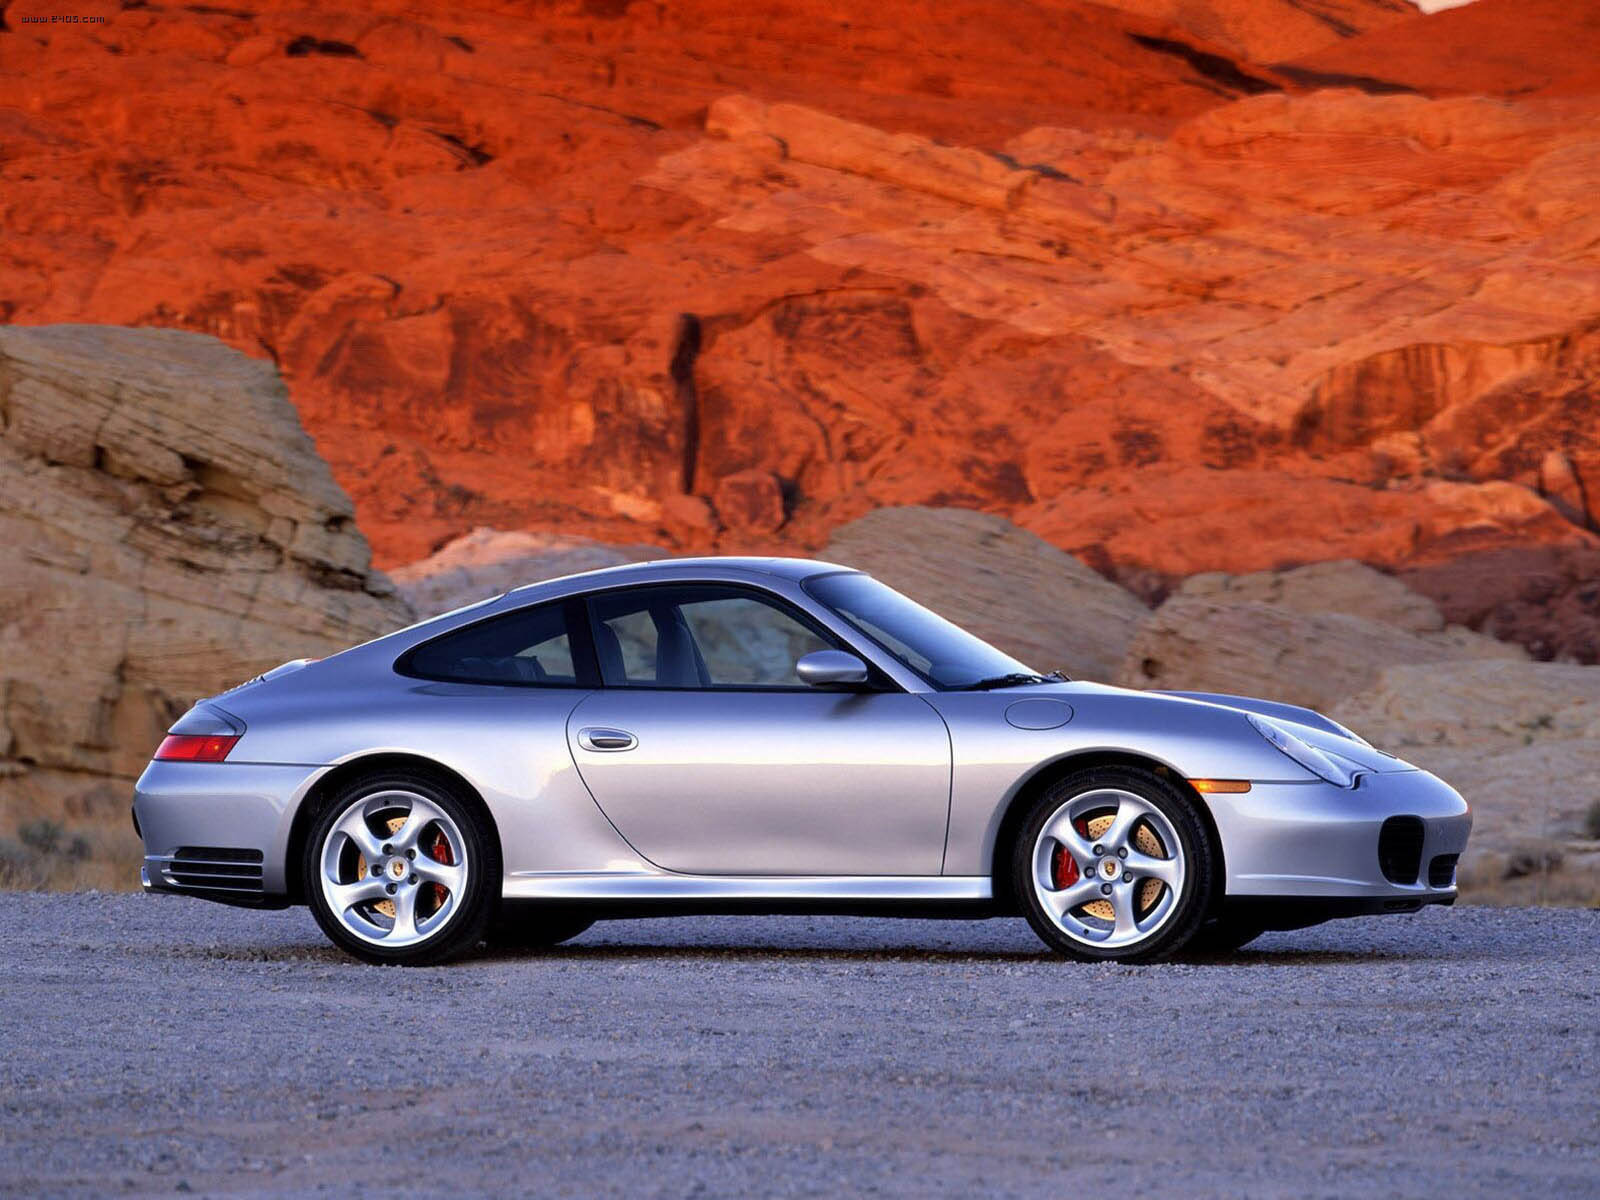 2004 porsche 911 carrera 4s 996 picture 18667 car review top speed. Black Bedroom Furniture Sets. Home Design Ideas